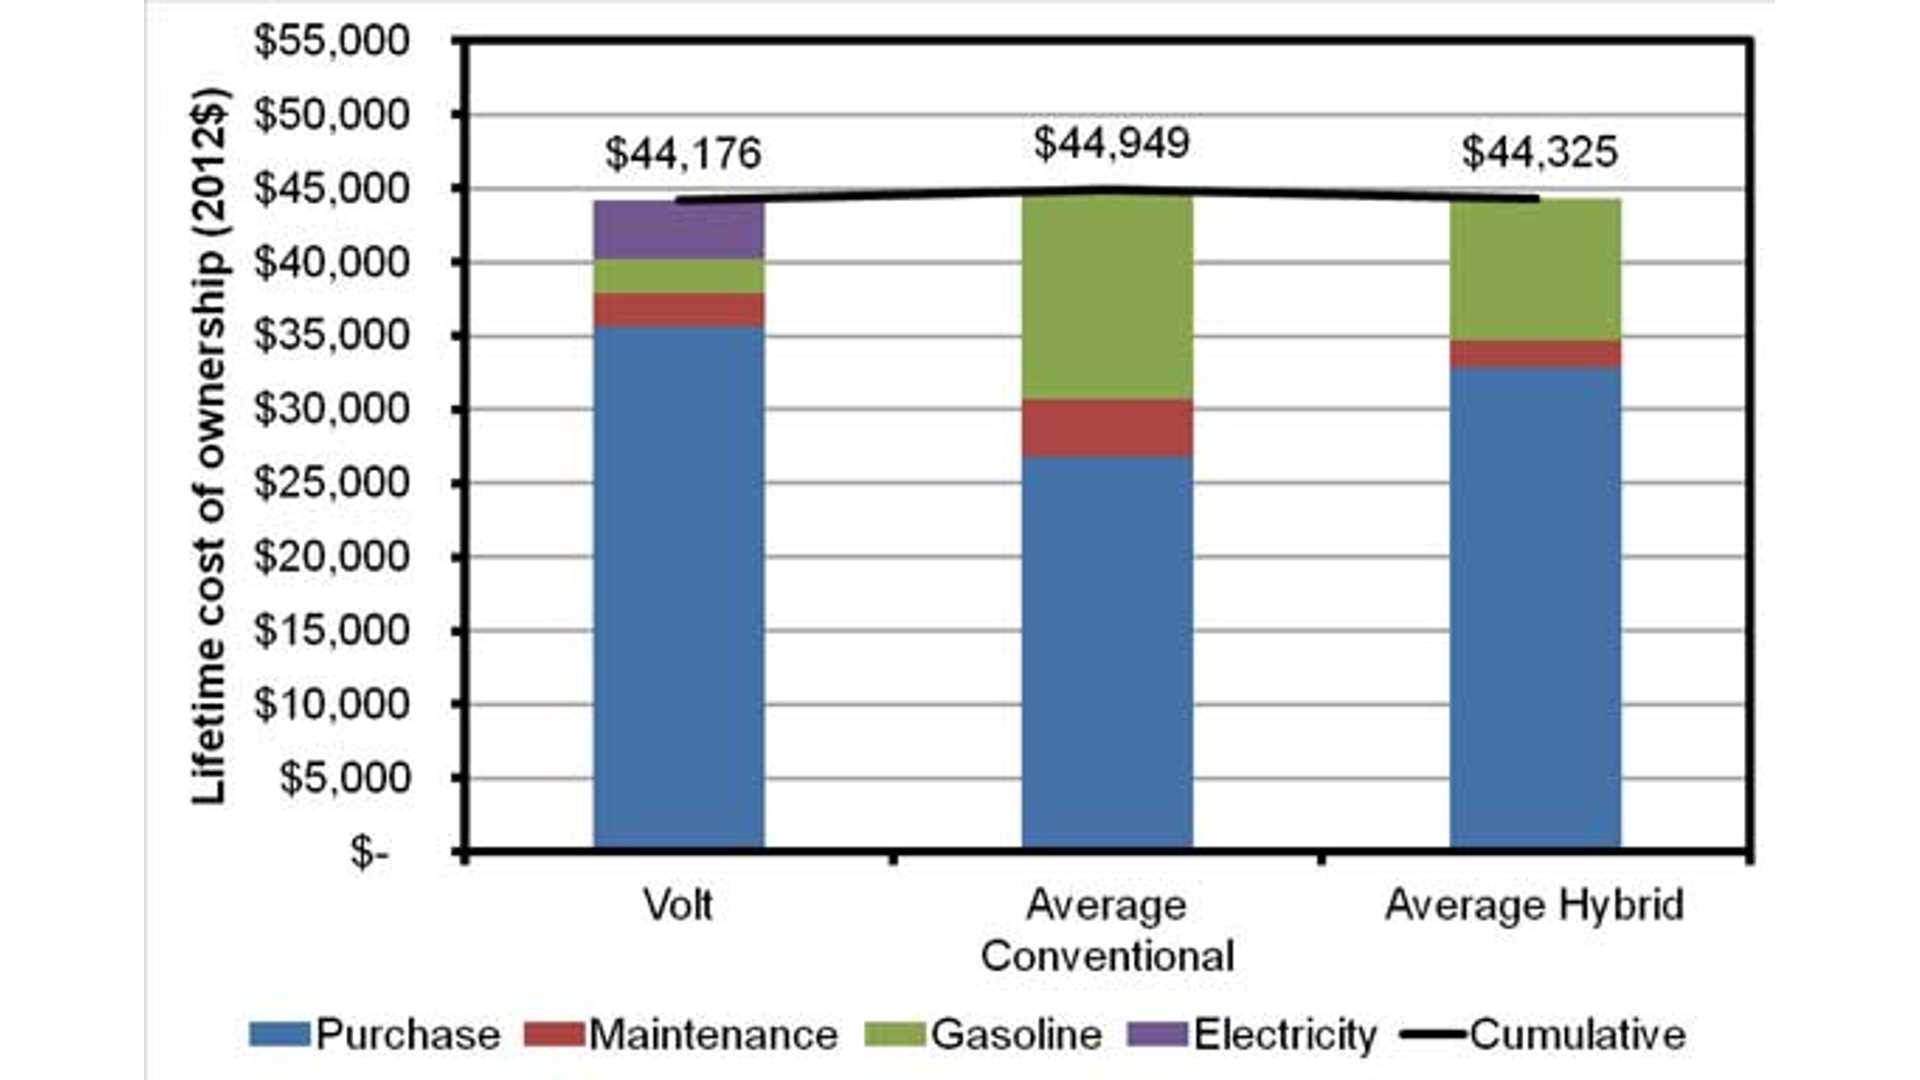 Comparing The Lifetime Ownership Cost Of Chevy Volt And Nissan Leaf To Other Hybrid Conventional Vehicles